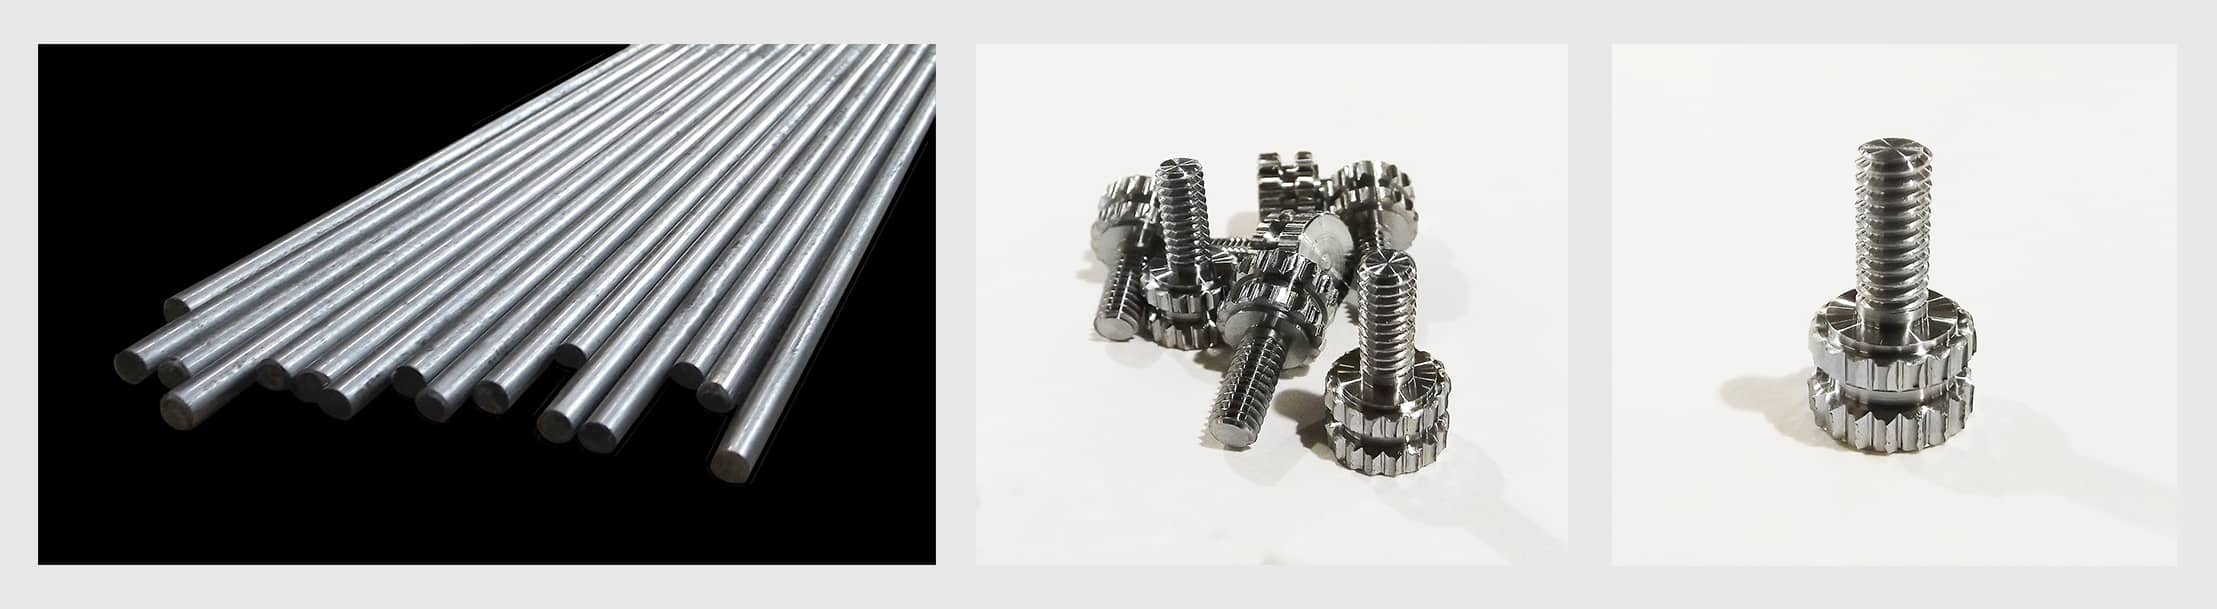 Stainless Steel 304 Machined Parts